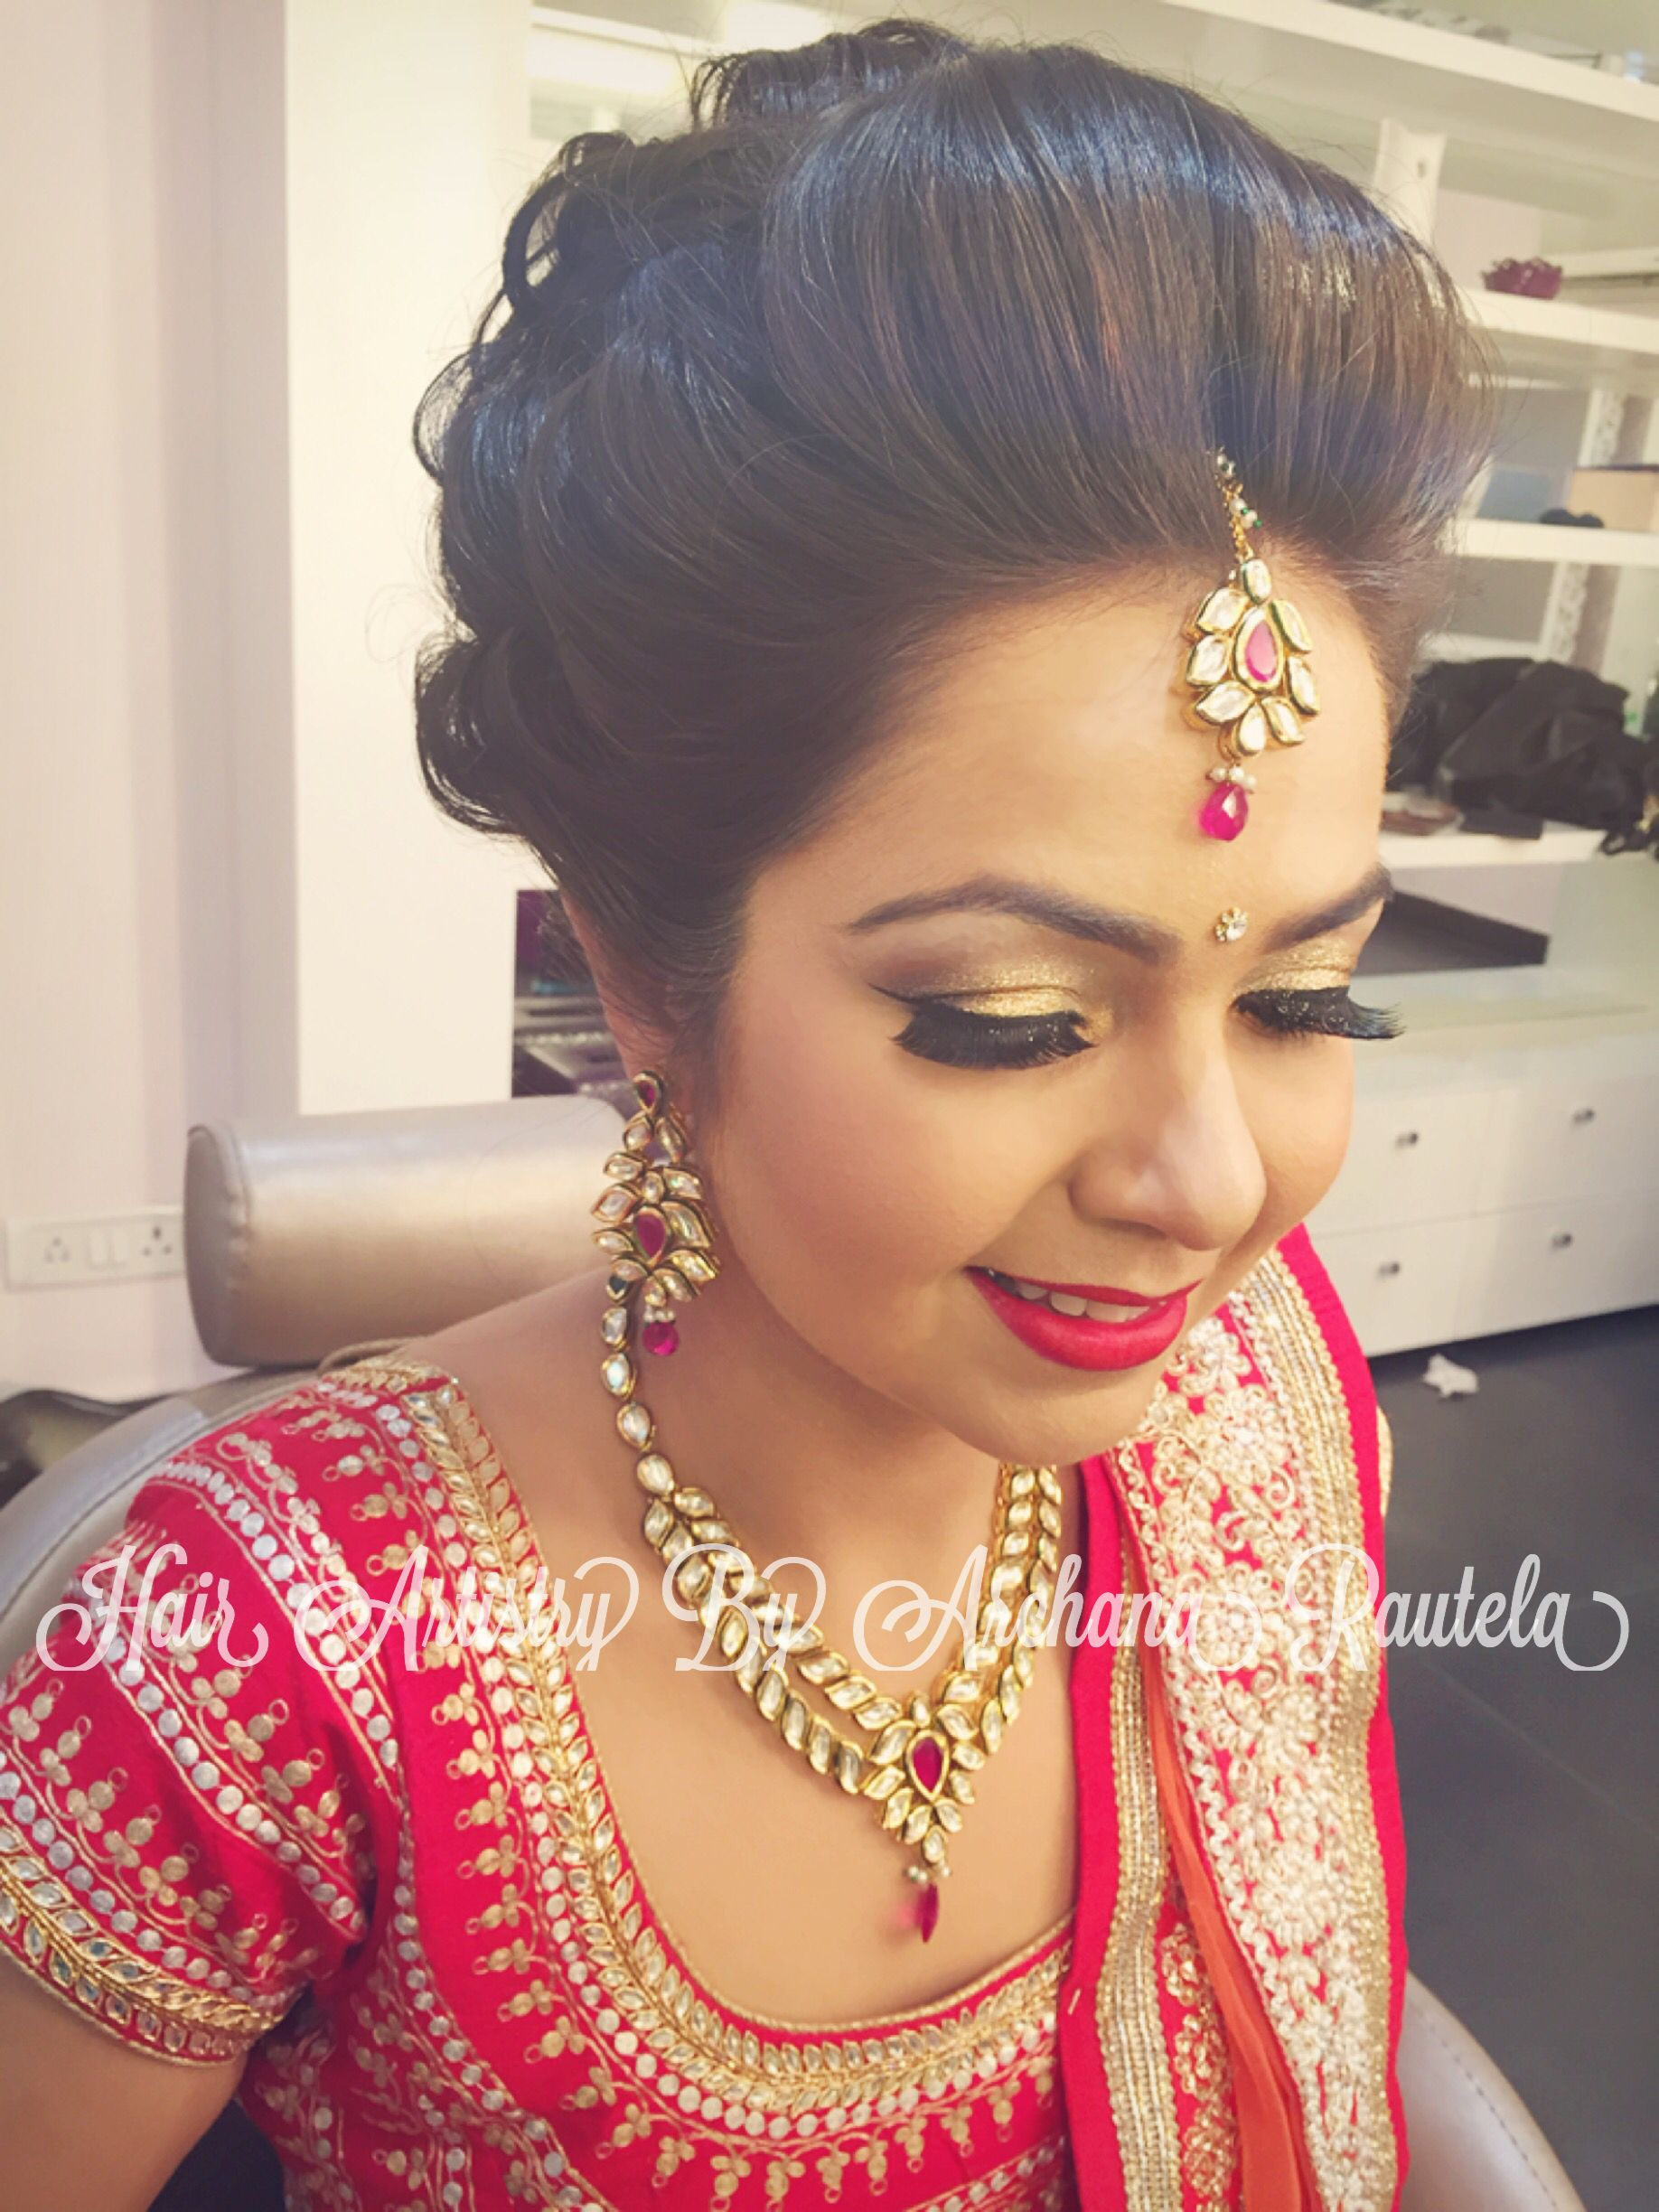 indian wedding hairstyle gallery%0A Indian Wedding Hair  Indian Weddings  Wedding Hairs  Hair Style